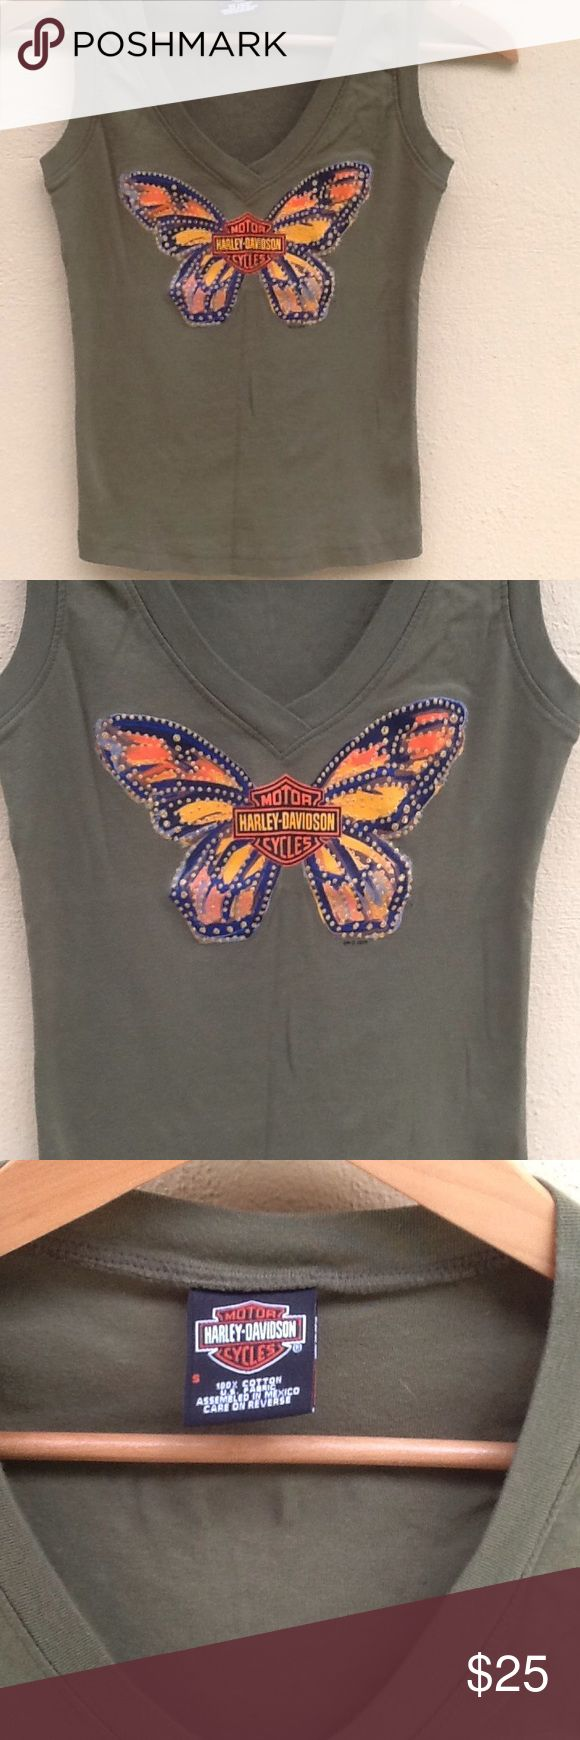 Harley-Davidson Ladies Tee Ladies tee by Harley-Davidson. This tee came from Honolulu ...chest measures 26... Length is 22. New cost was 49.00 Harley-Davidson Tops Tank Tops